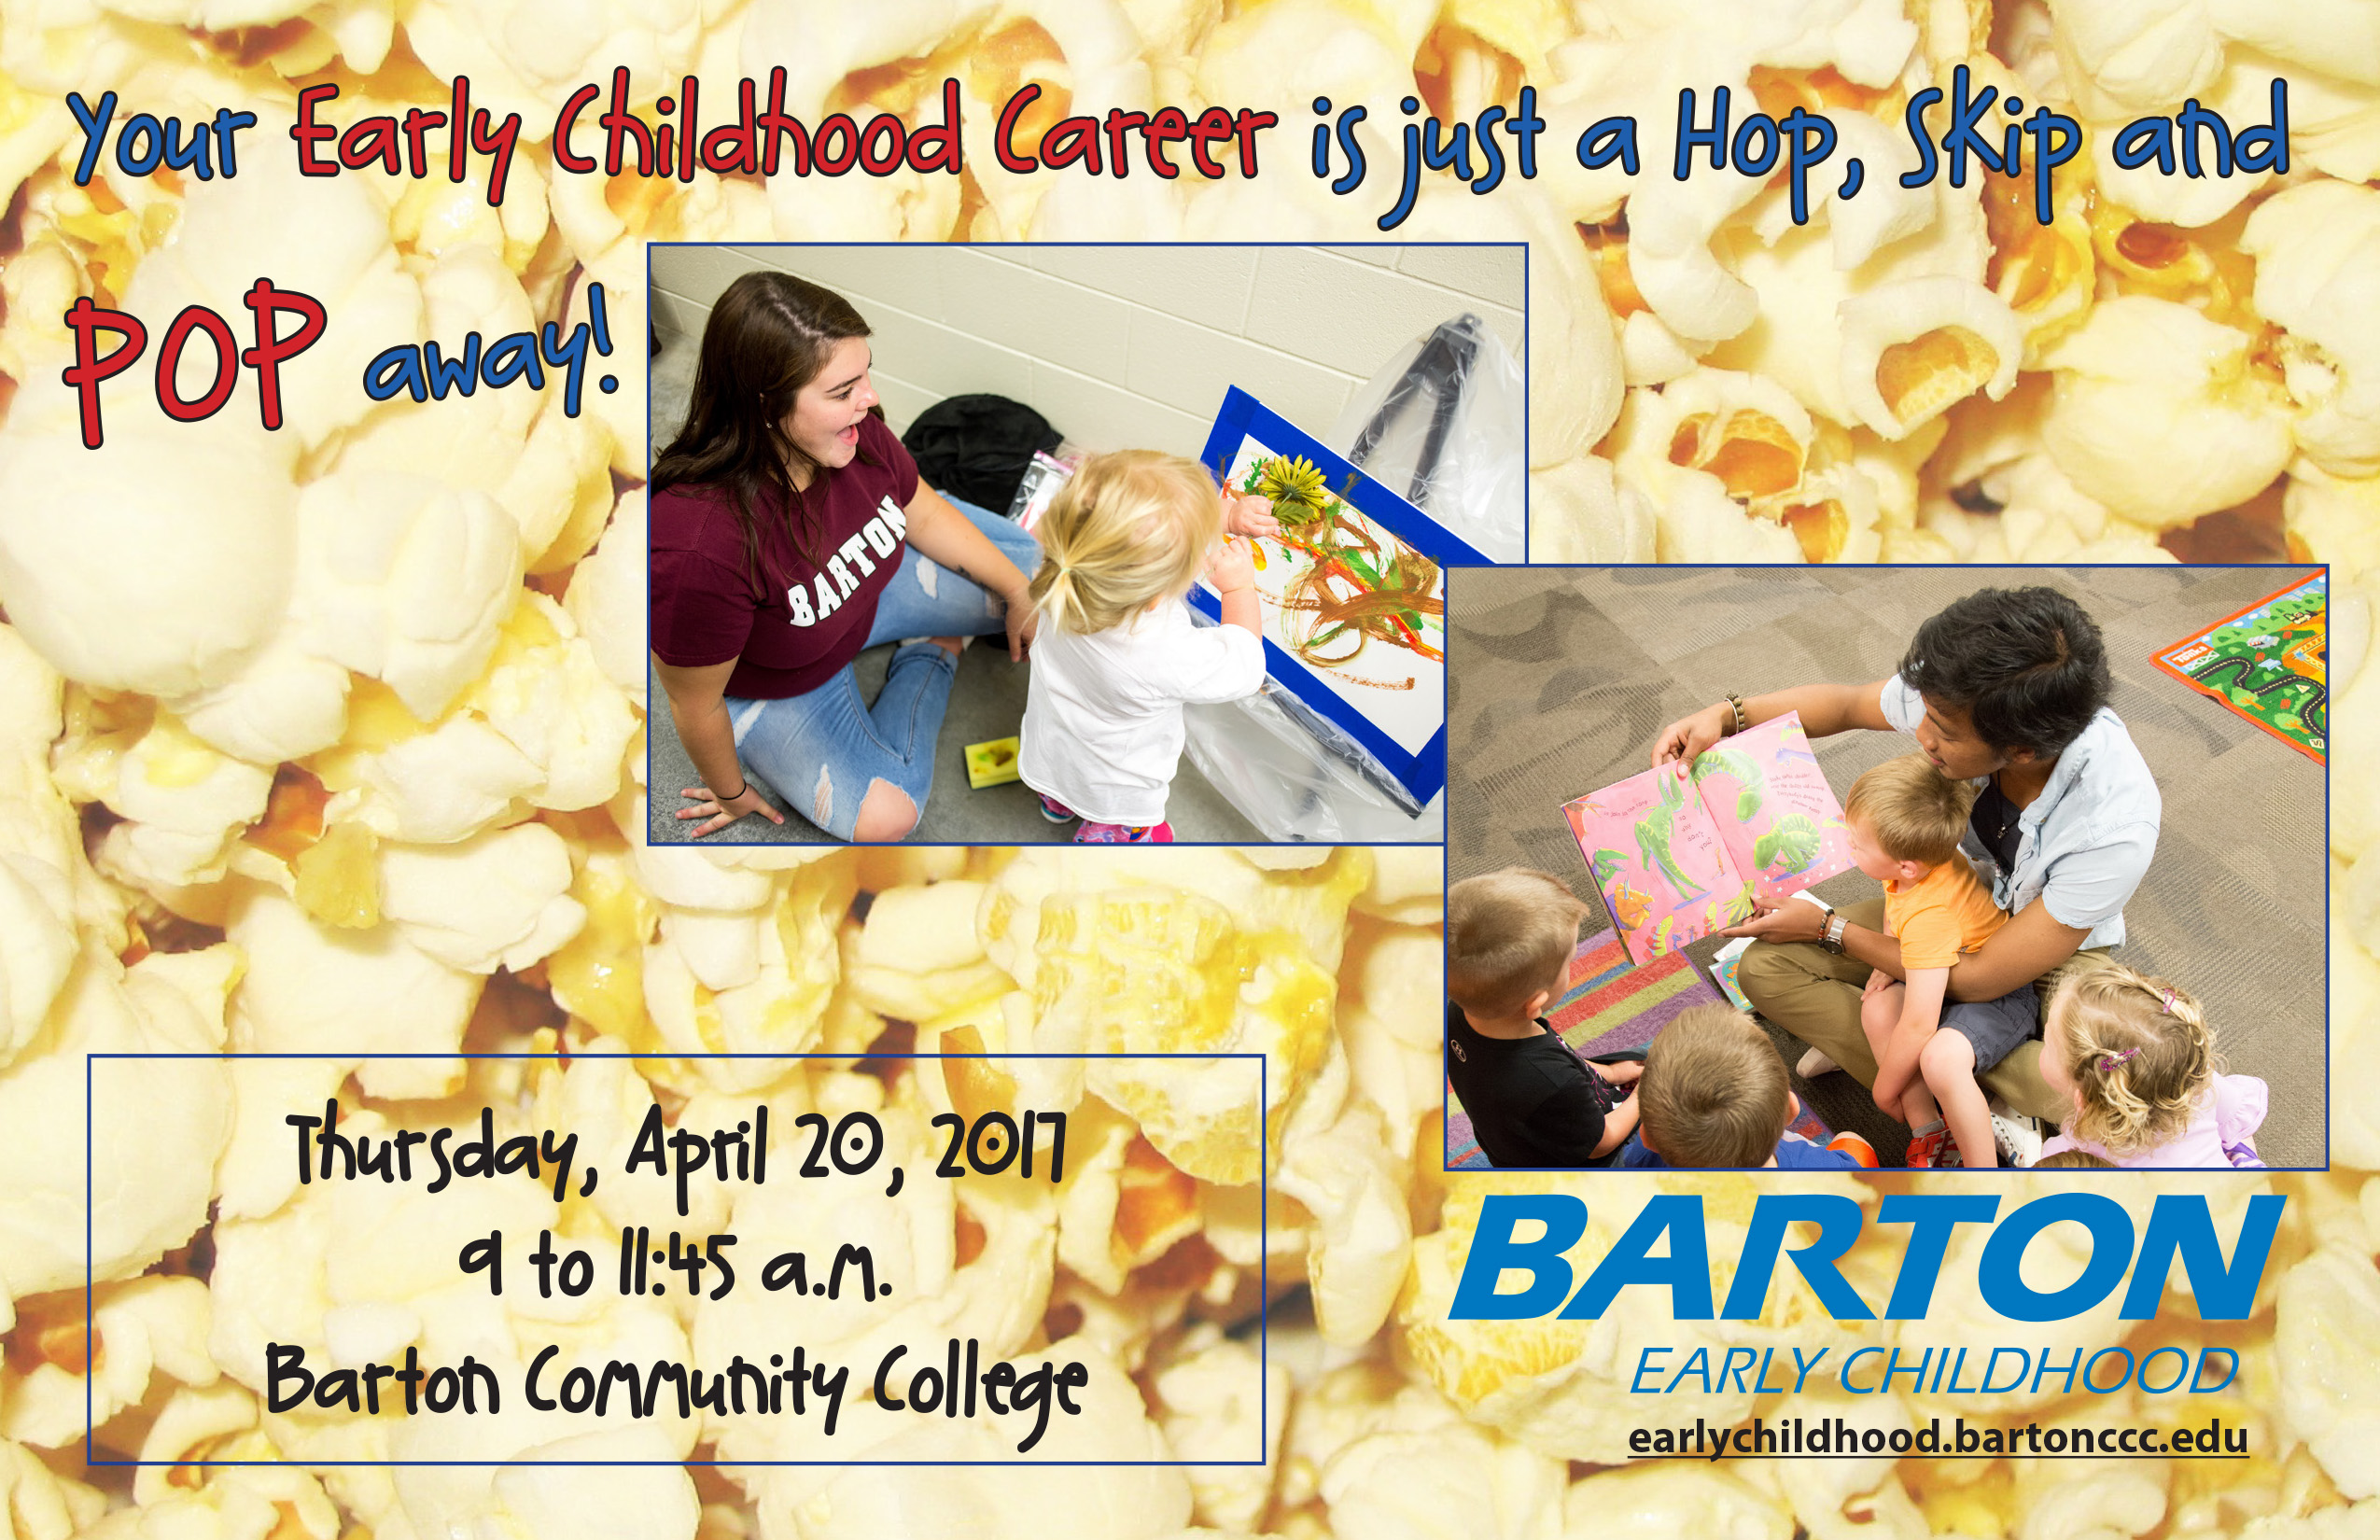 early childhood barton community college early childhood day thursday 20 from 9 to 11 45 a m at barton